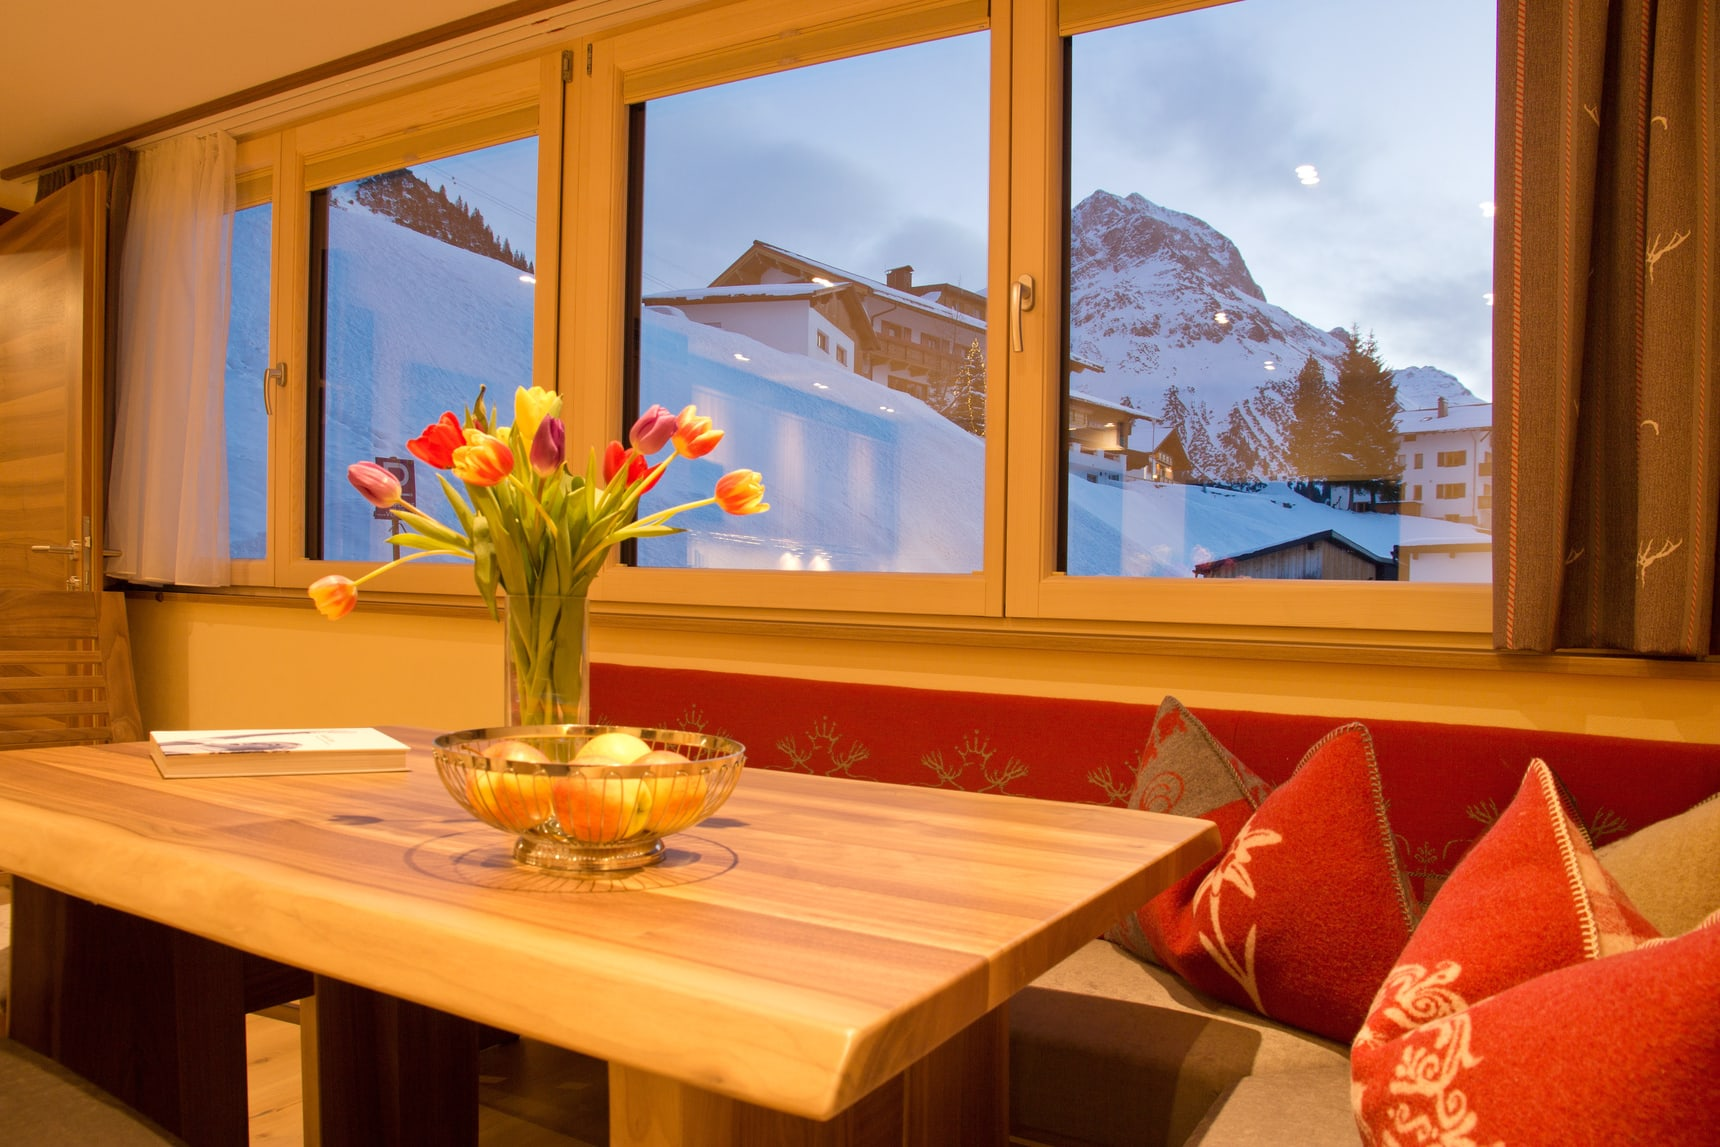 Flowers sit on a wooden table next to a window view of beautiful snow covered Lech.